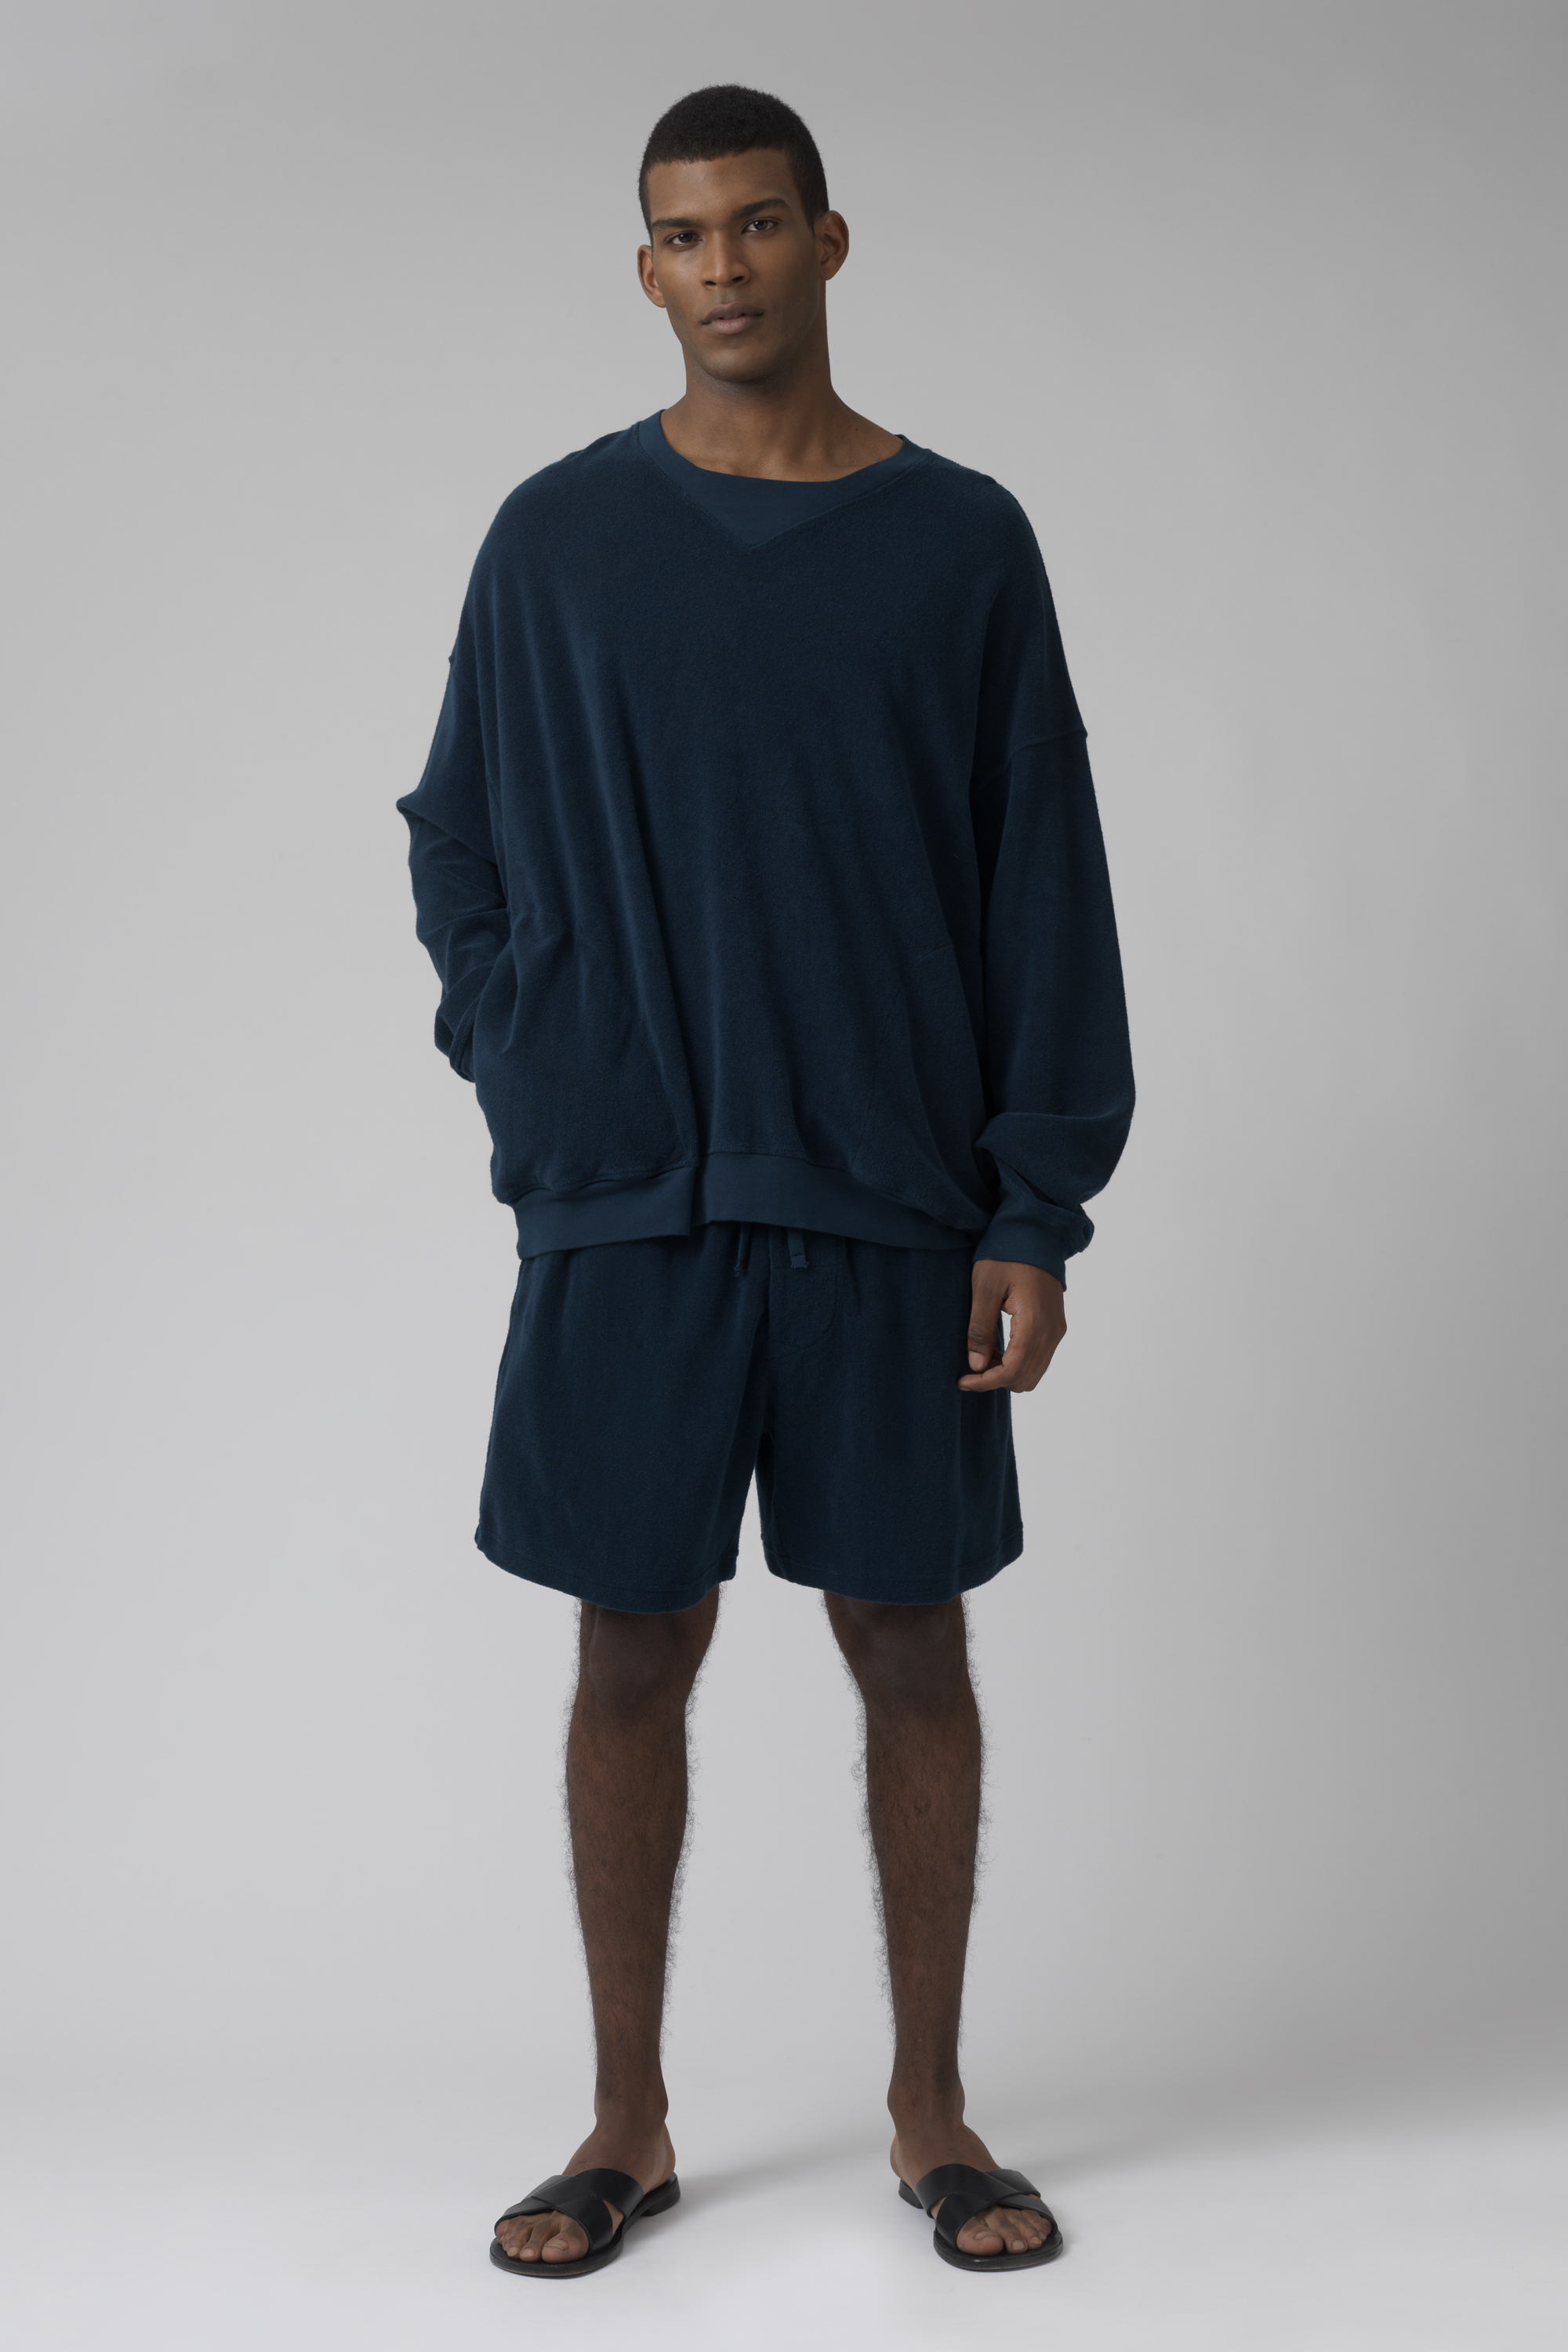 Lucien teal French Terry shorts